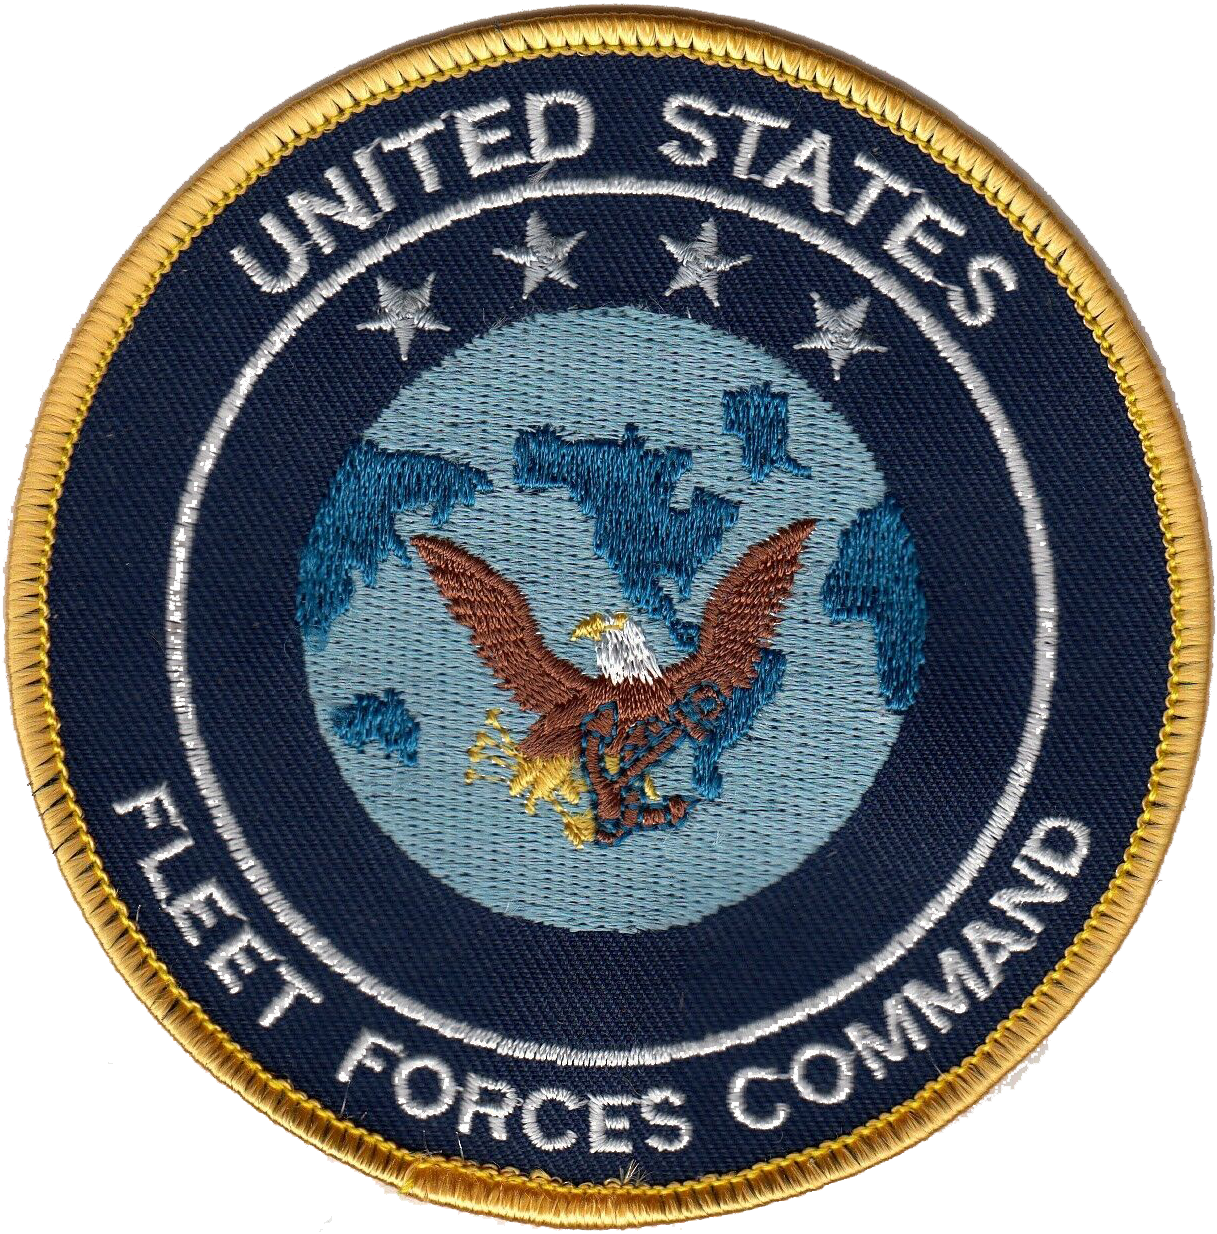 Commander, US Fleet Forces Command (COMUSFLTFORCOM)